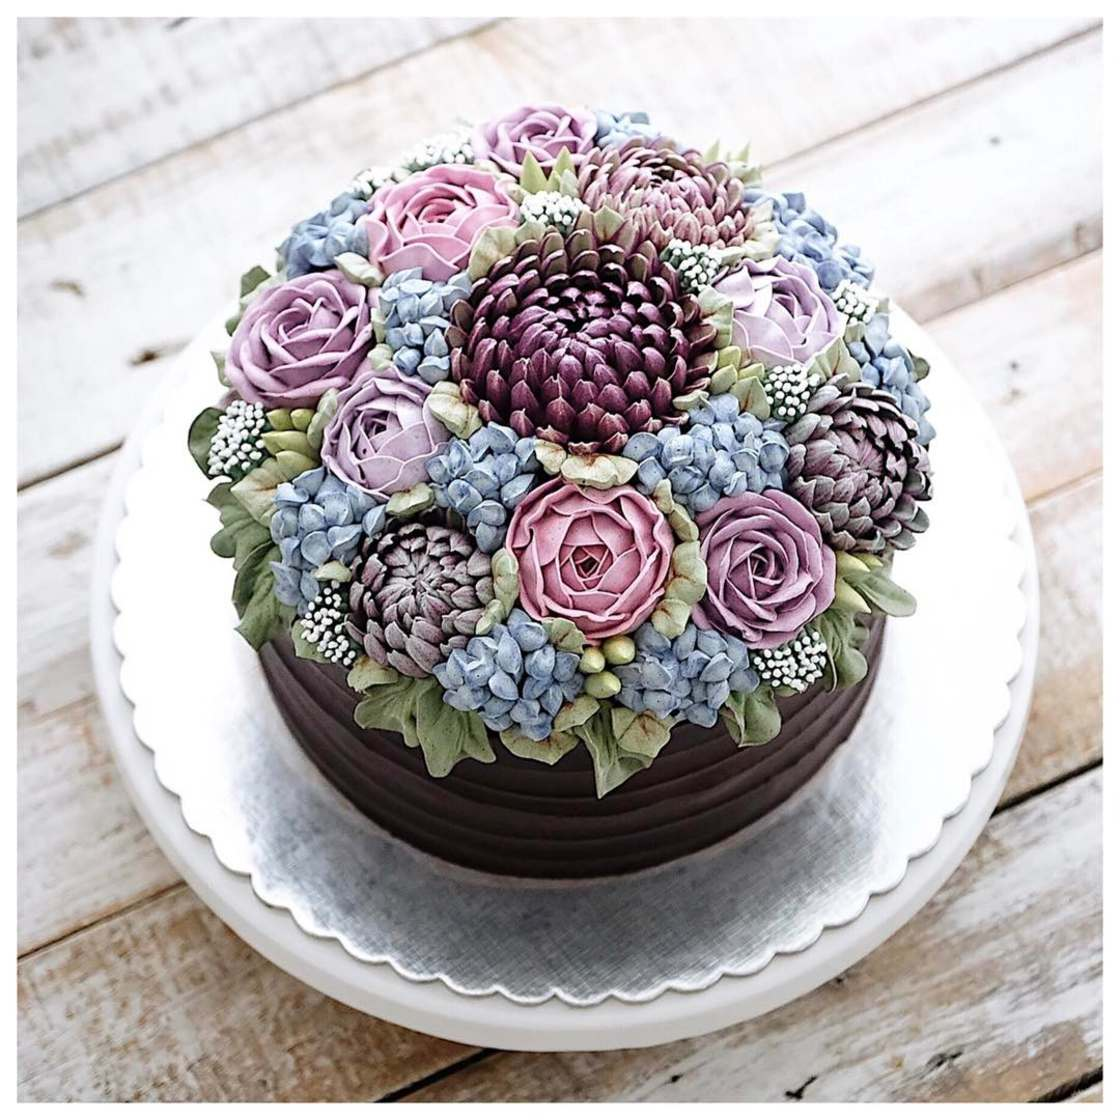 Flower Cakes - The beautiful culinary terrariums of Iven Kawi